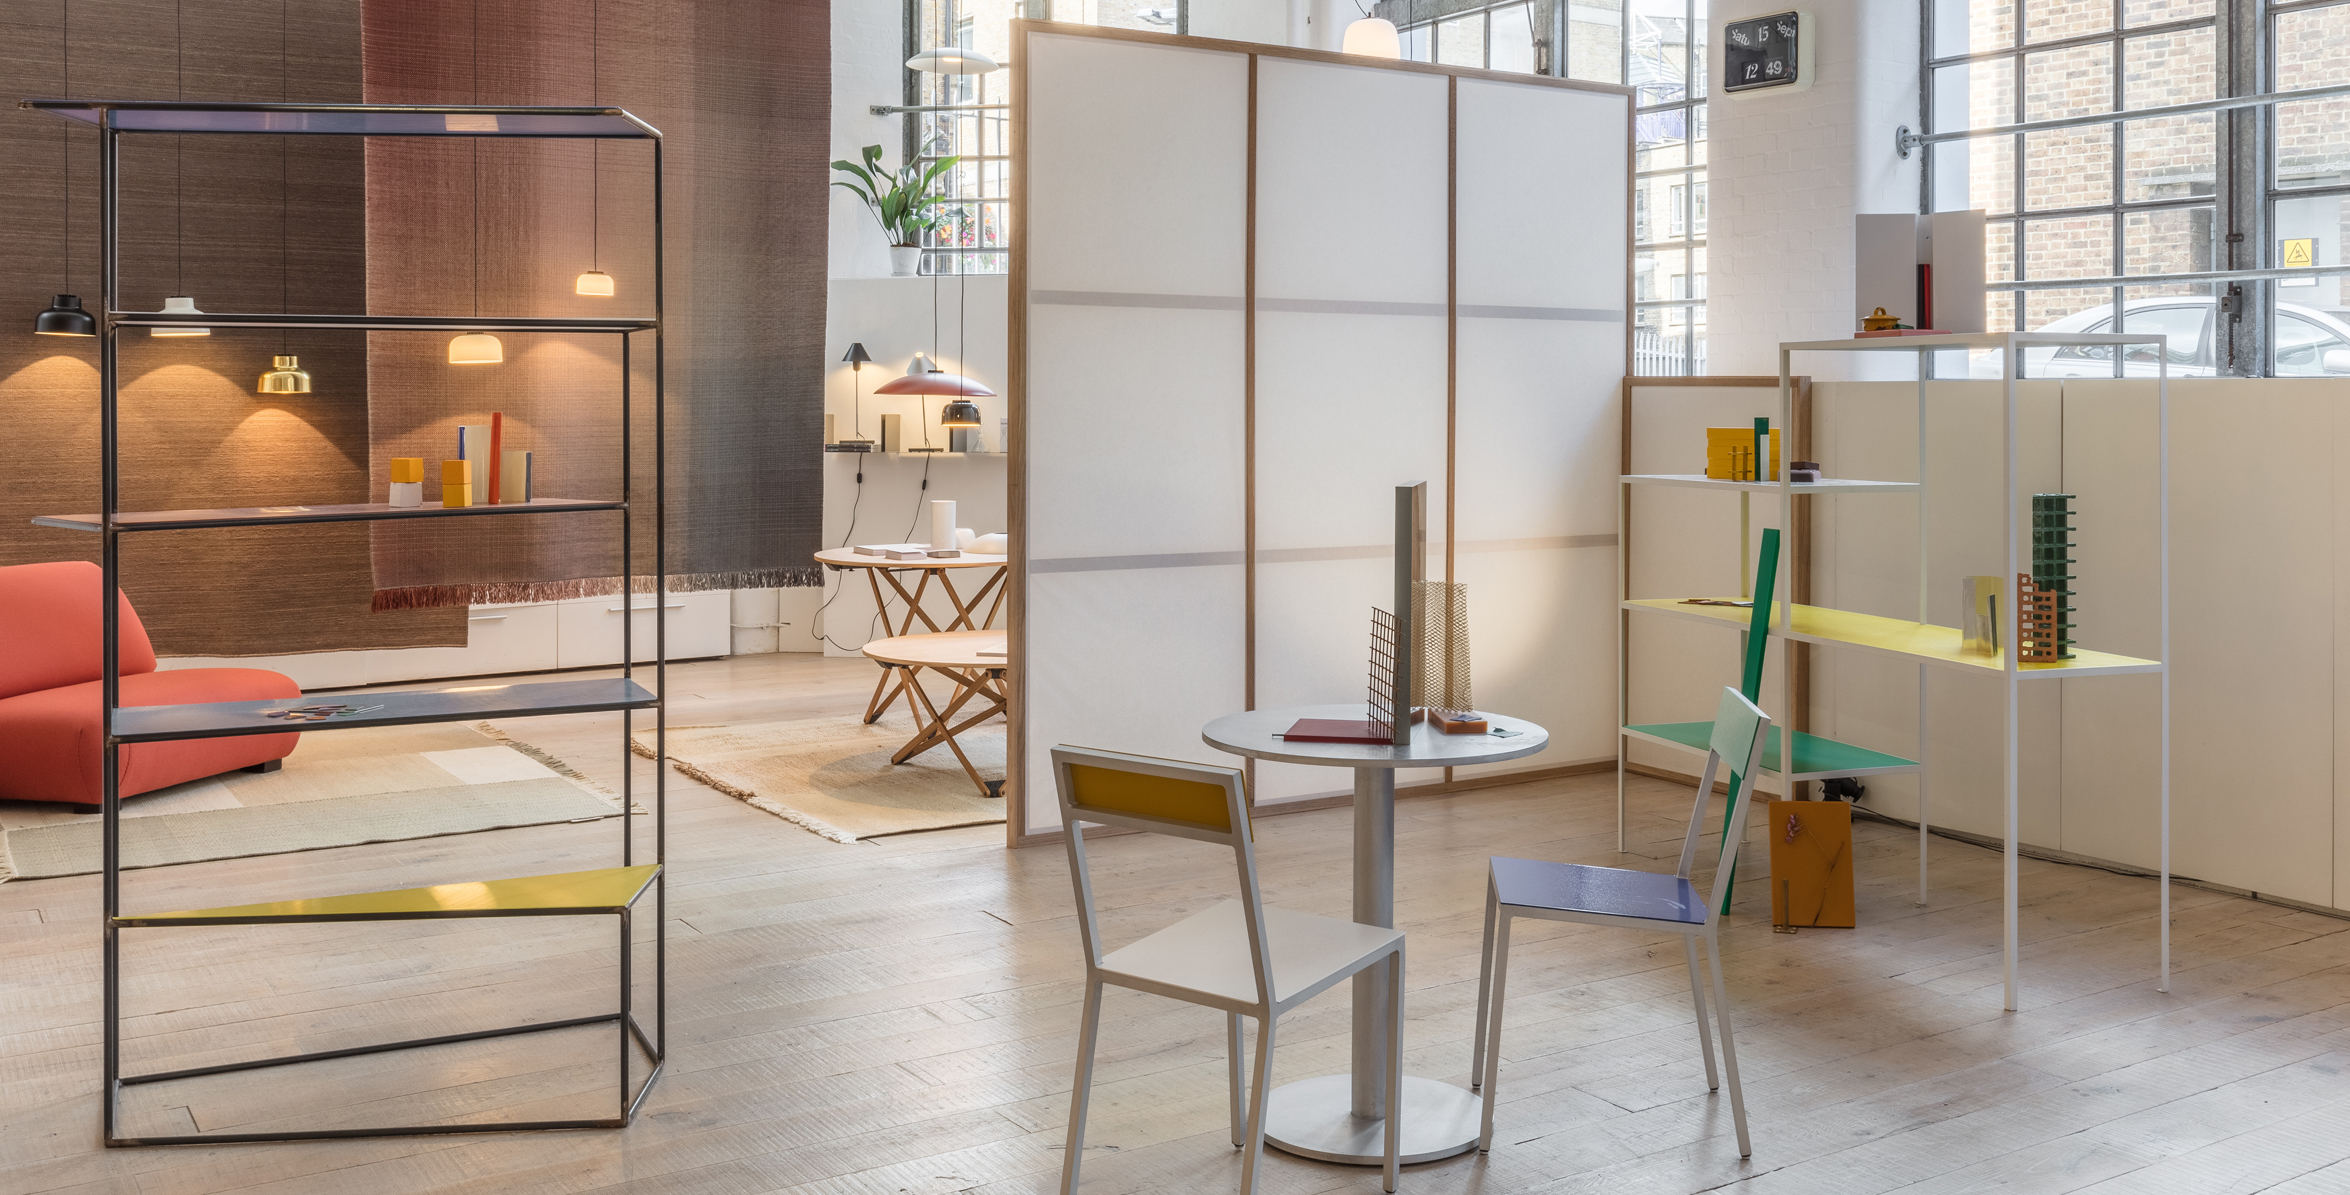 In Conversation With The Designers - LDF 2018 image